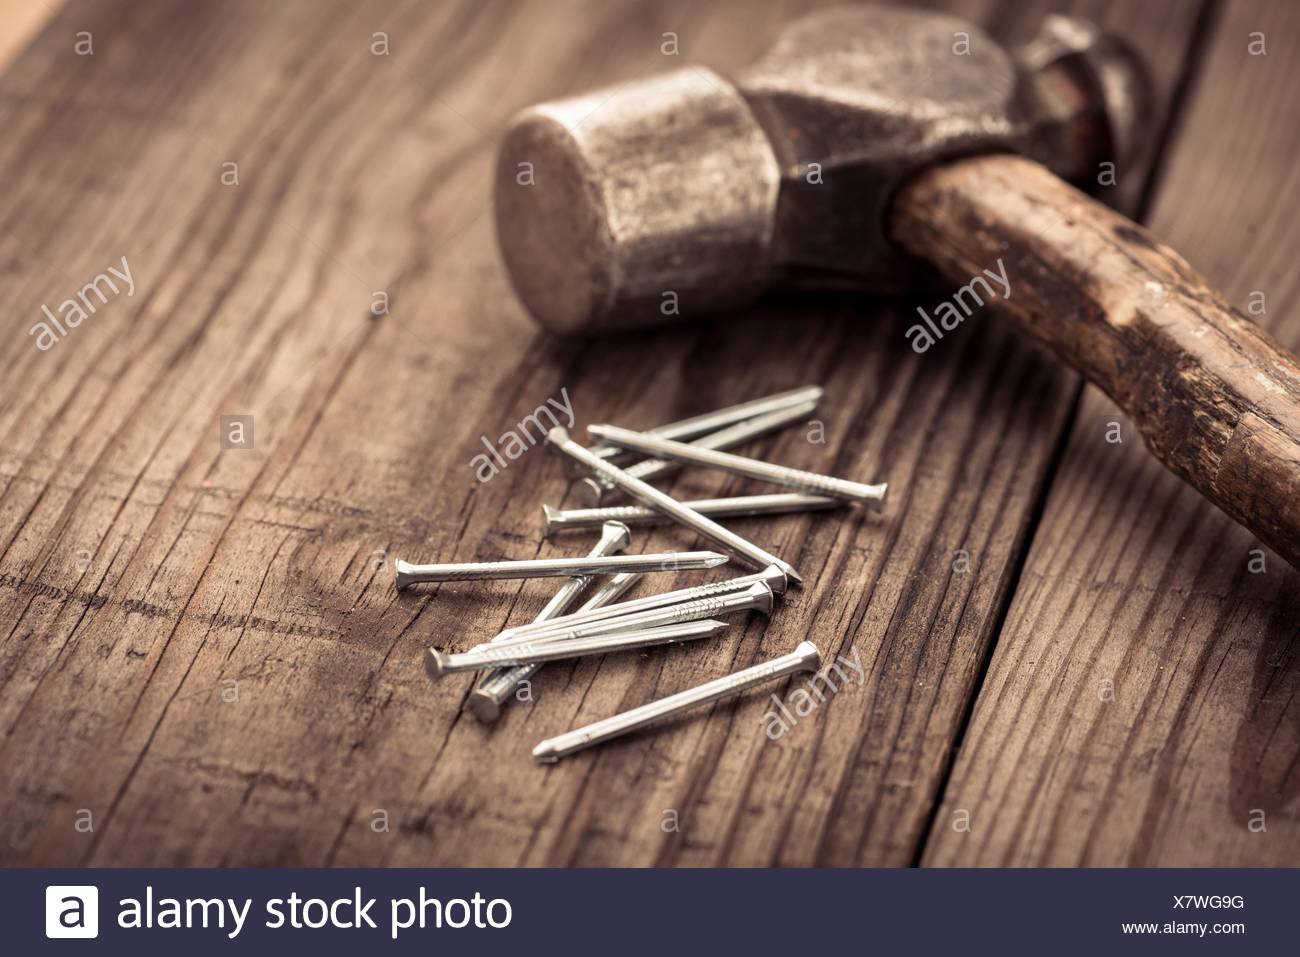 Vintage Hammer And Nails Lying On Wooden Surface Of Workbench